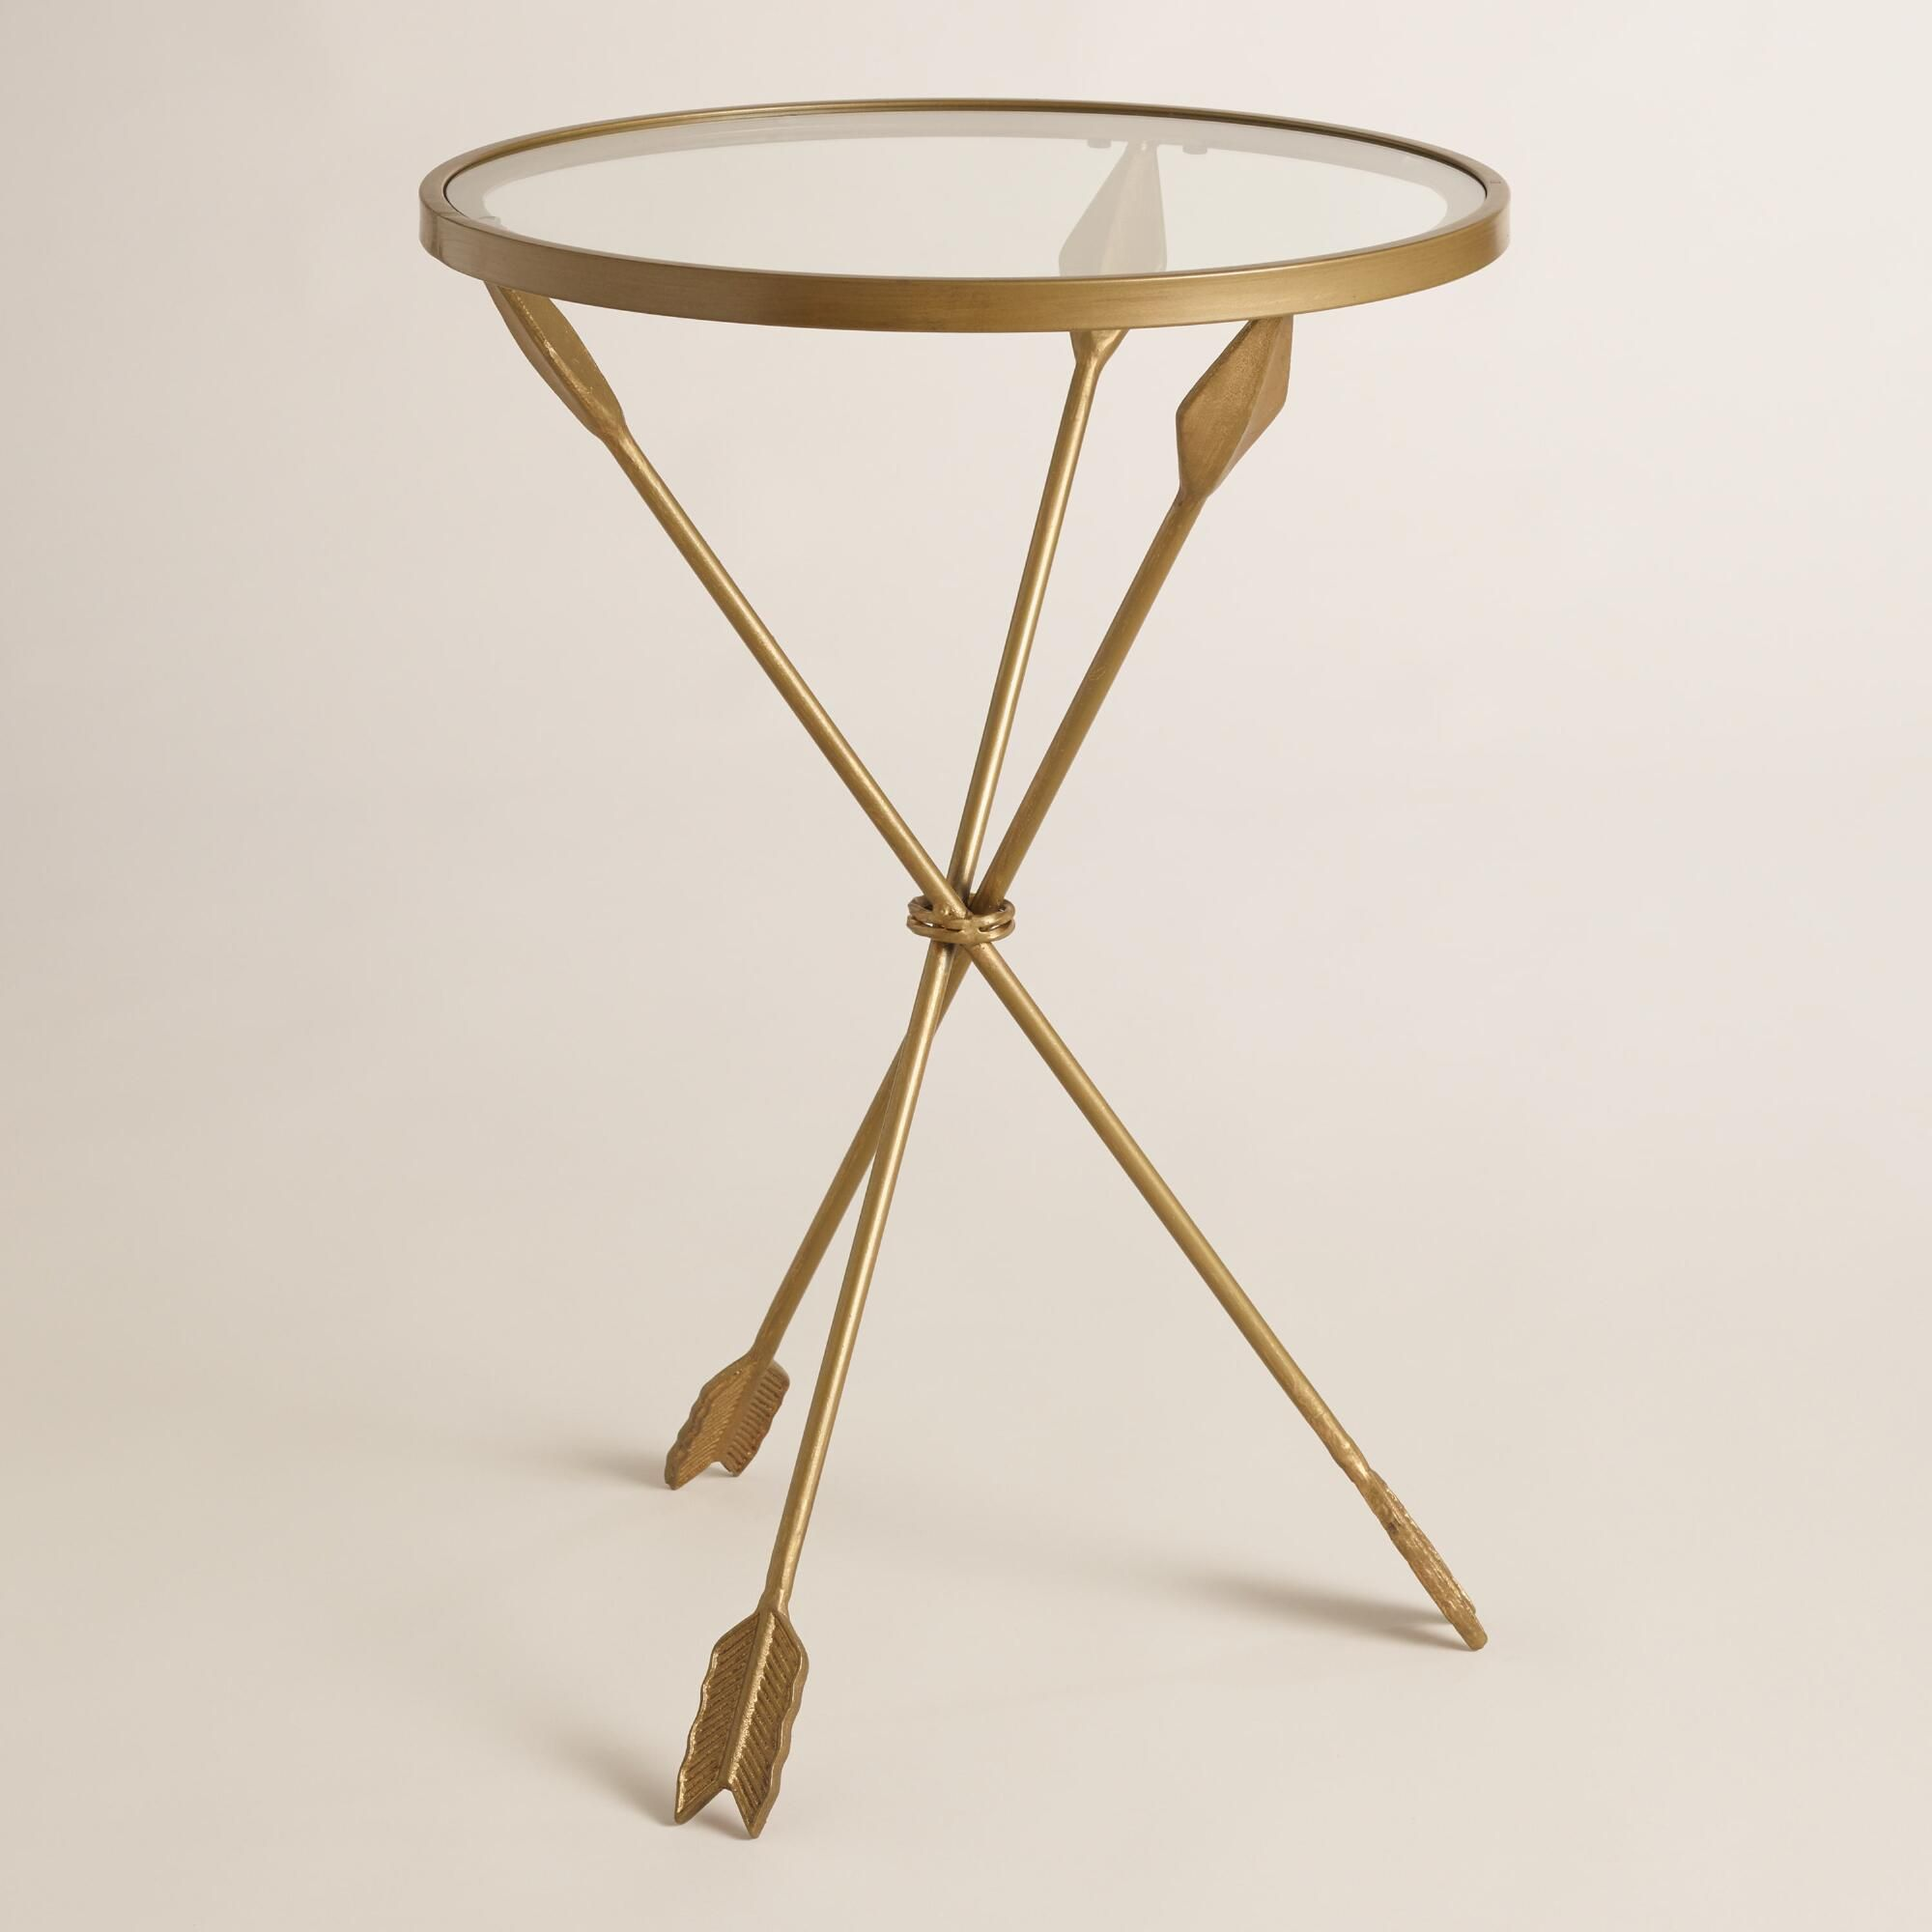 gold metal and glass arley accent table  tripod arrow and living  - distressed gold arrows create the tripod base of our side table a uniqueaccent next